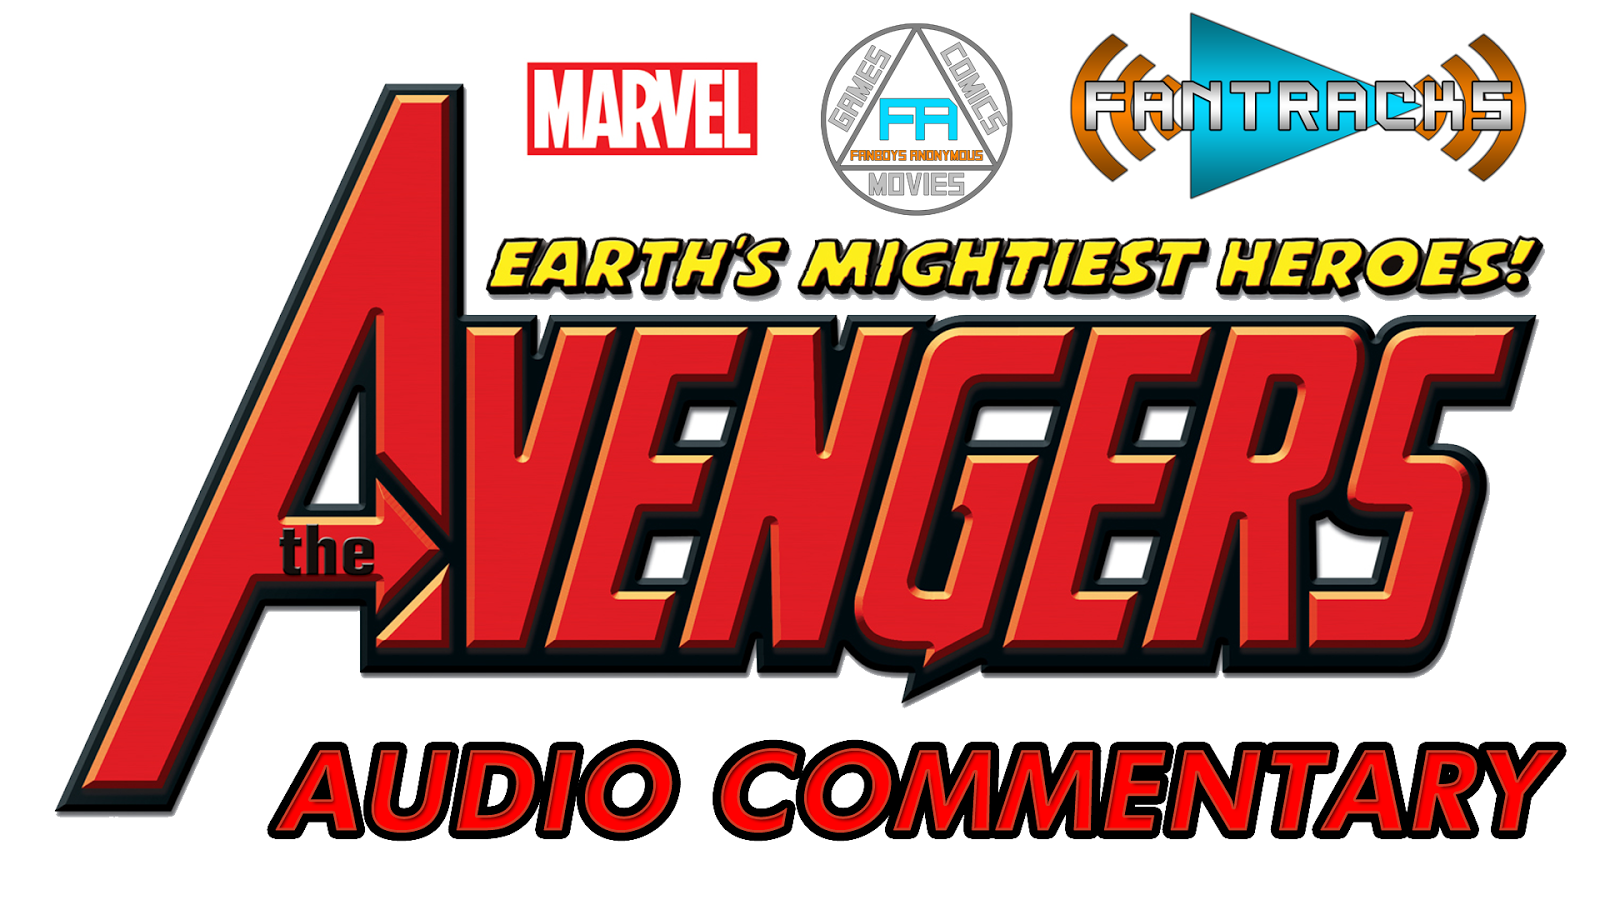 Avengers audio commentary Earth's Mightiest Heroes Michael Korvac season 2 episode 6